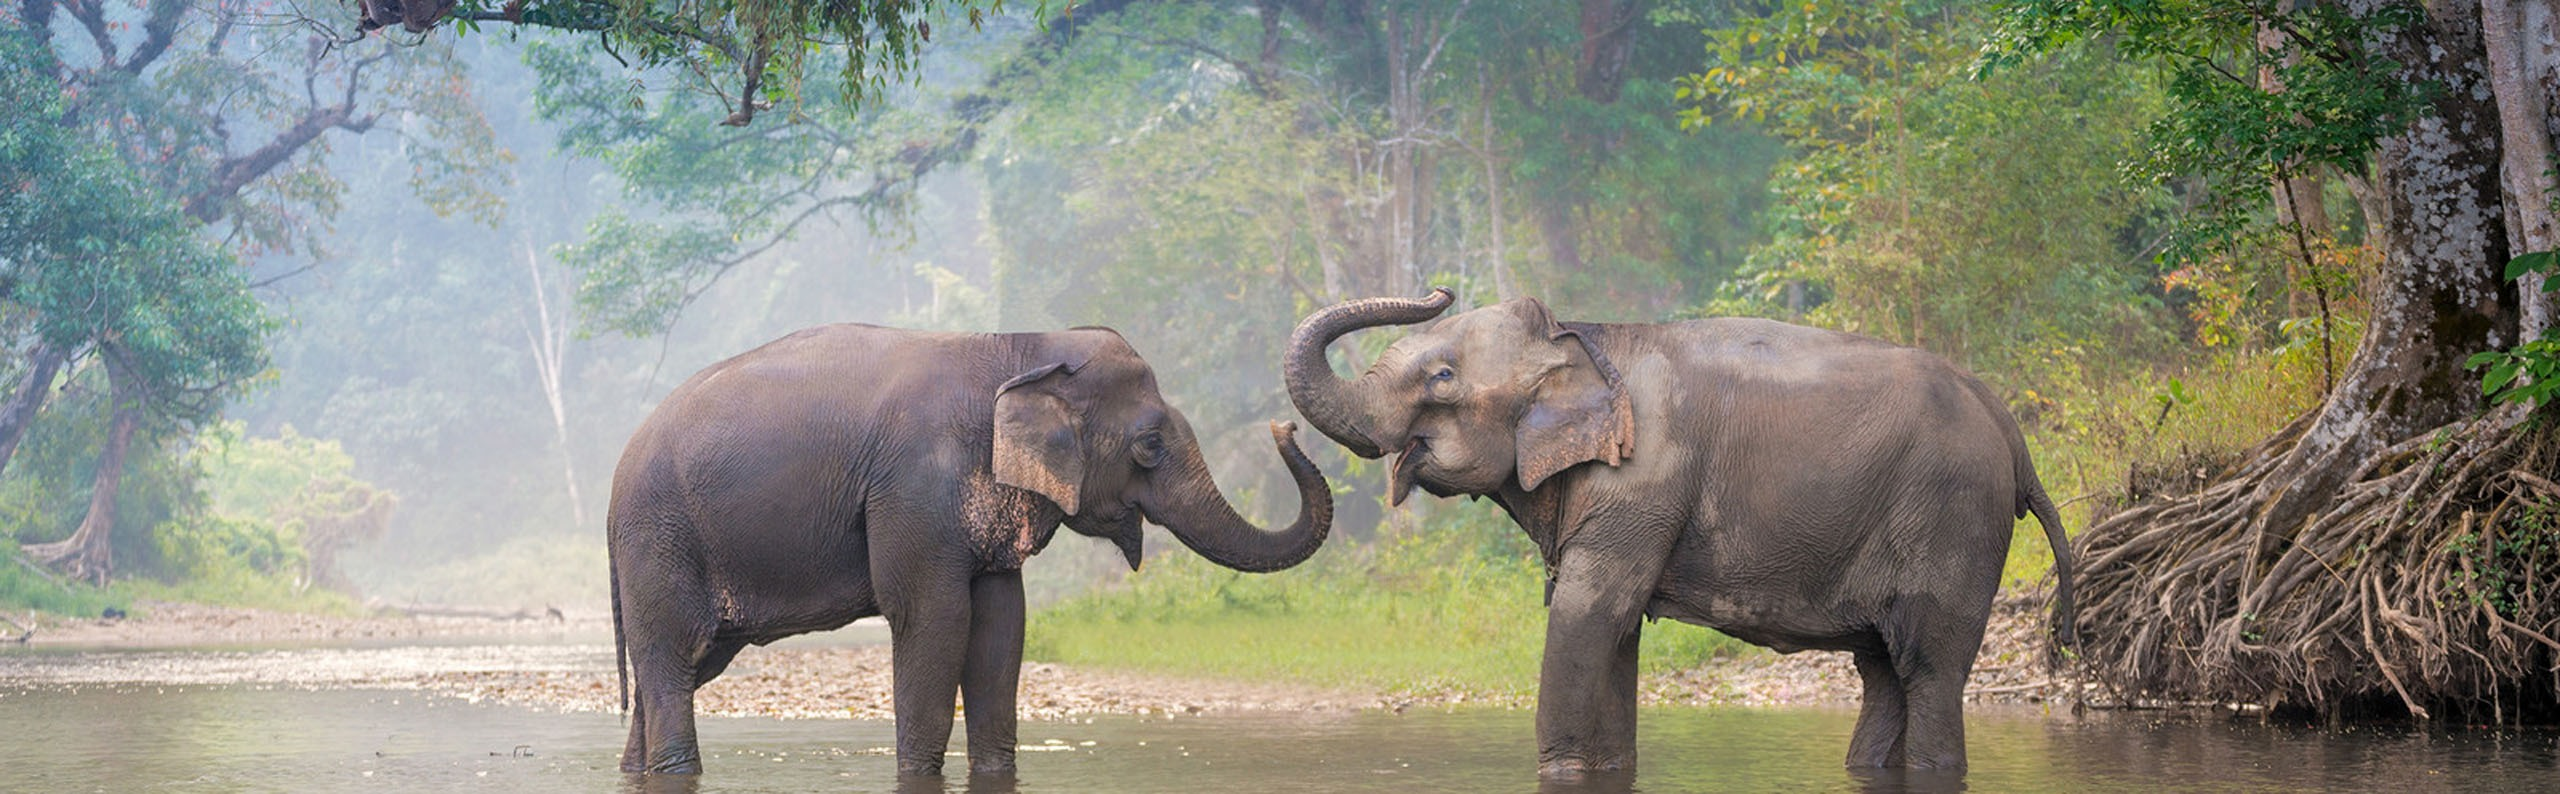 The Best 3 Ethical Elephant Sanctuaries in Chiang Mai